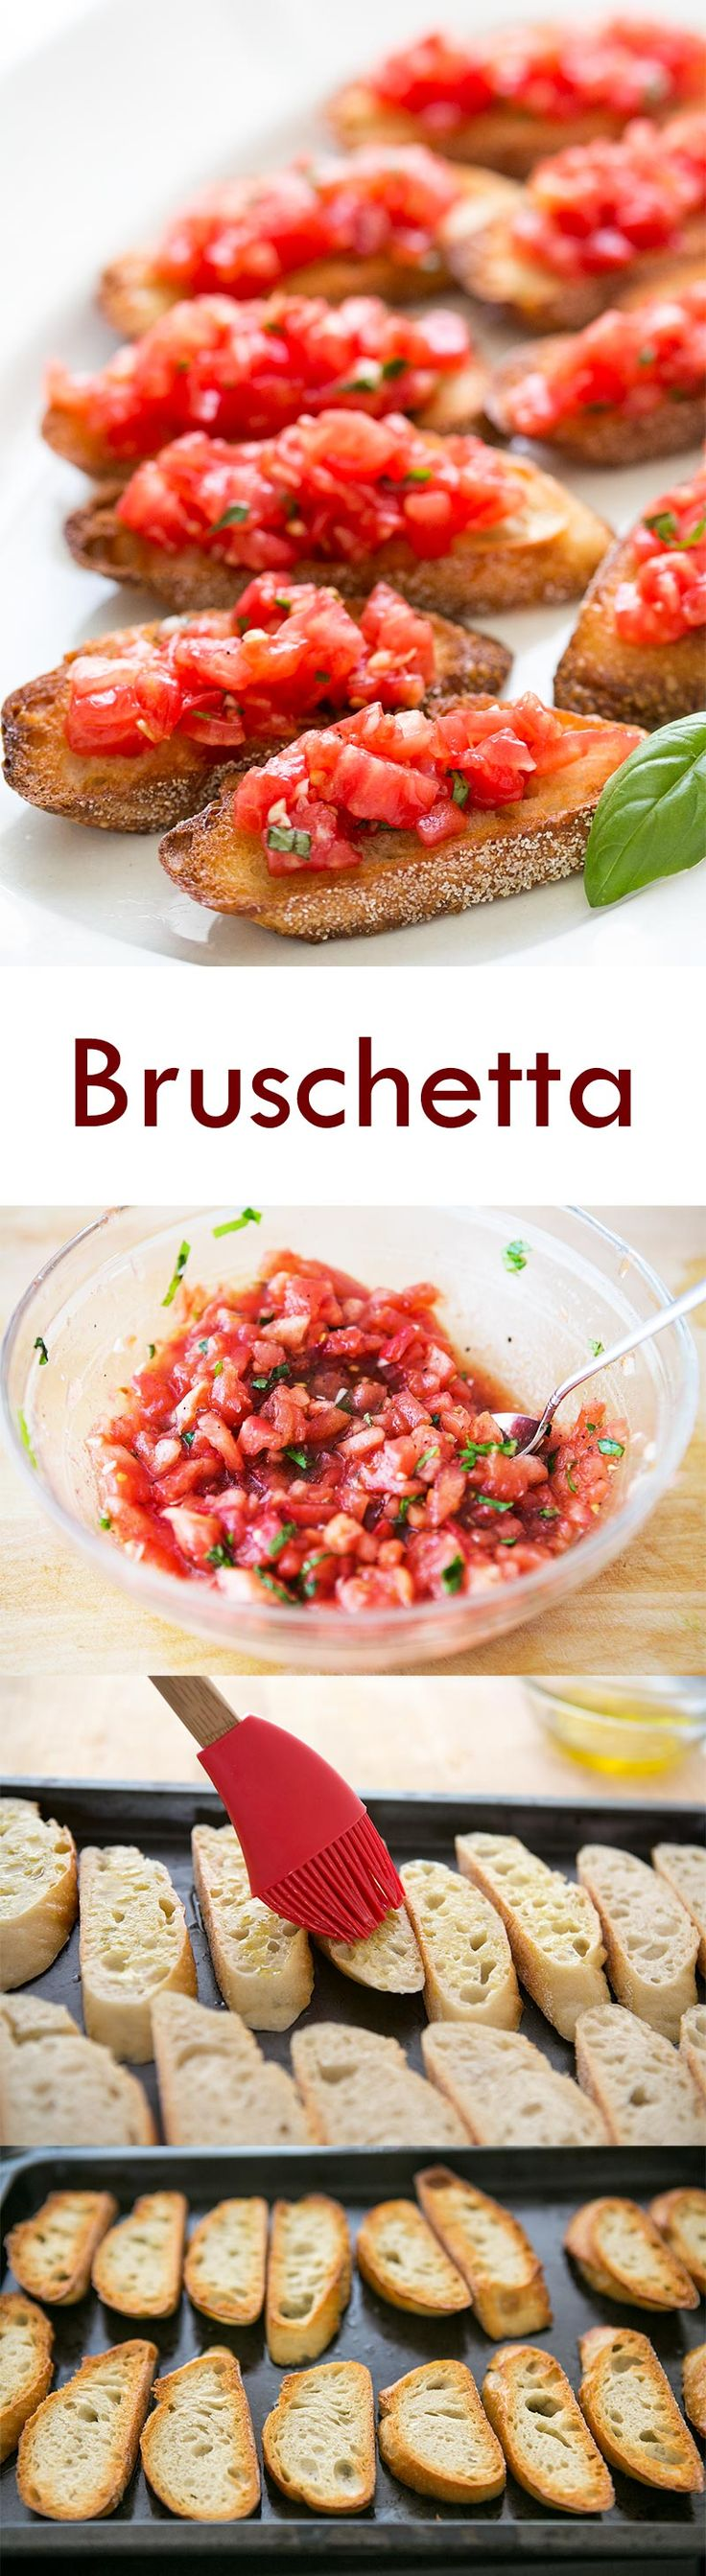 Bruschetta with tomato and basil! Chopped fresh tomatoes with garlic, basil…